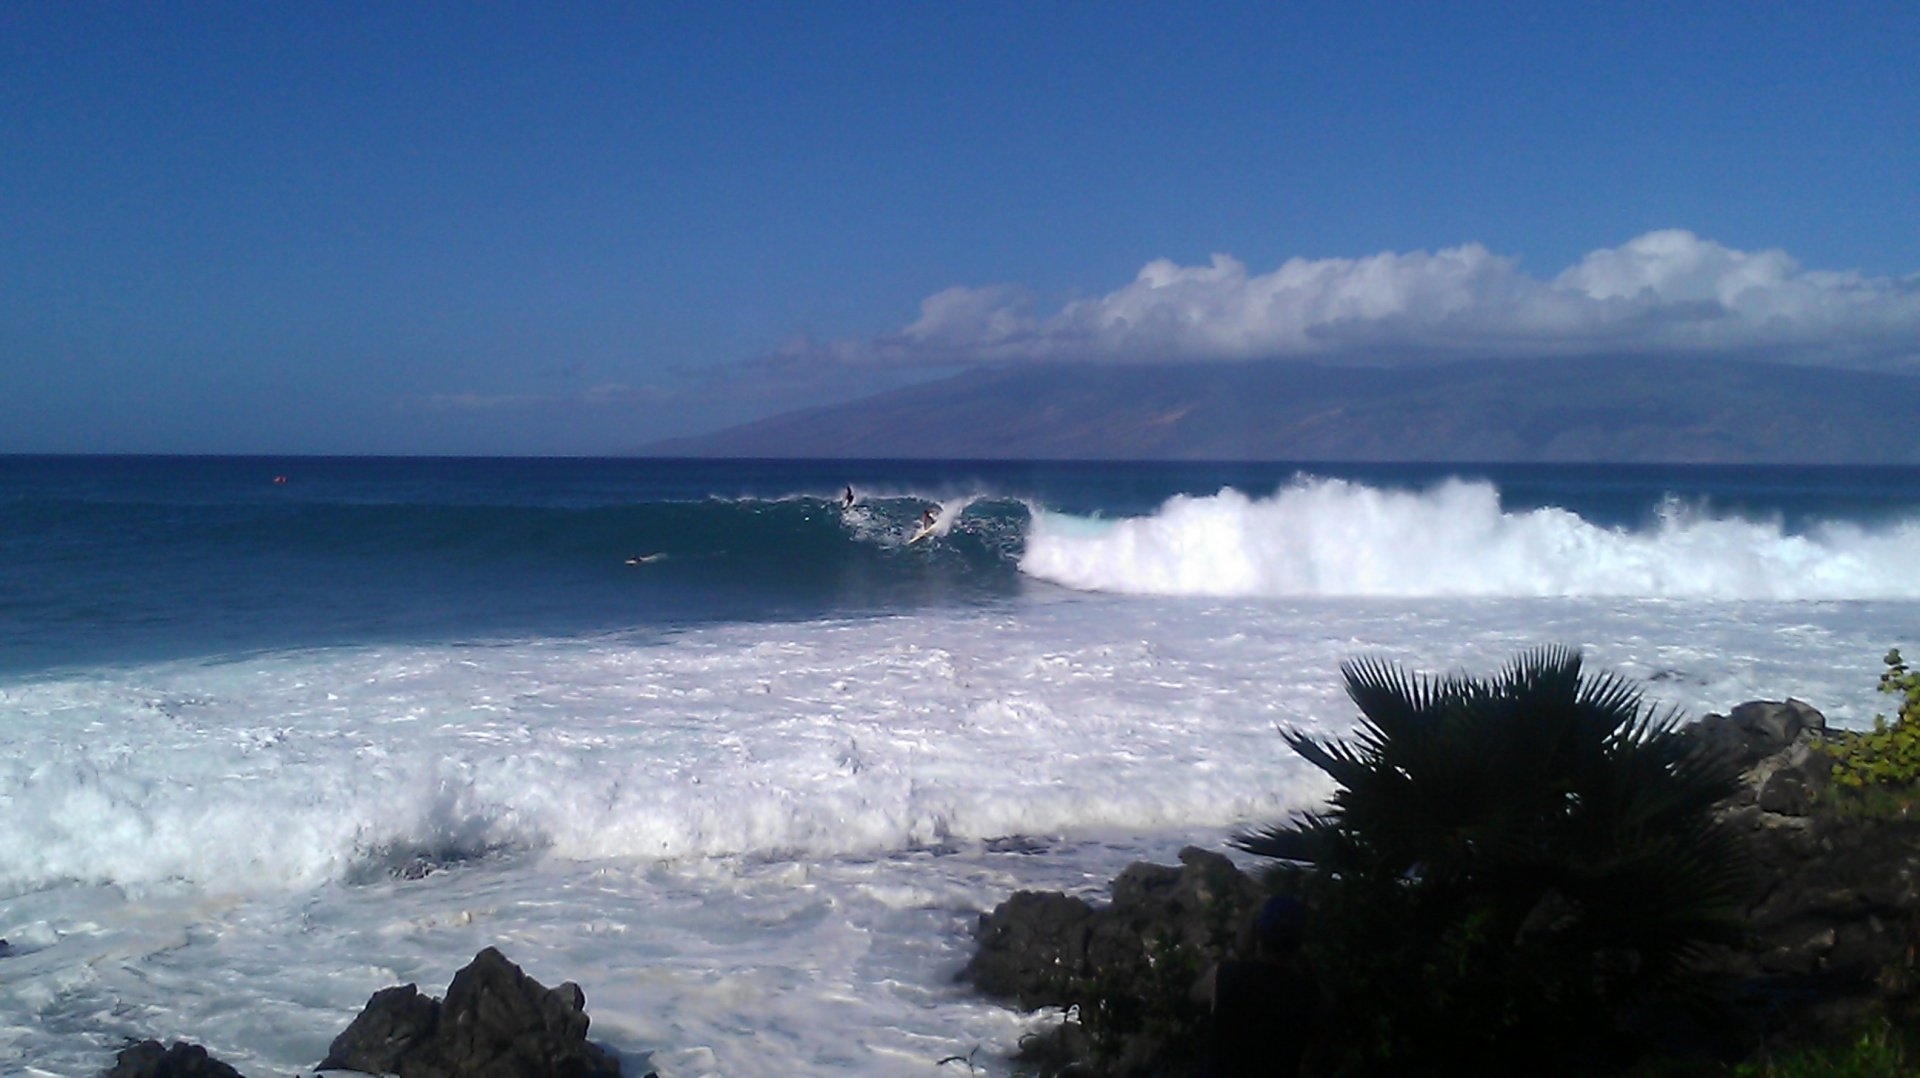 j.harlow's photo of Little Makaha